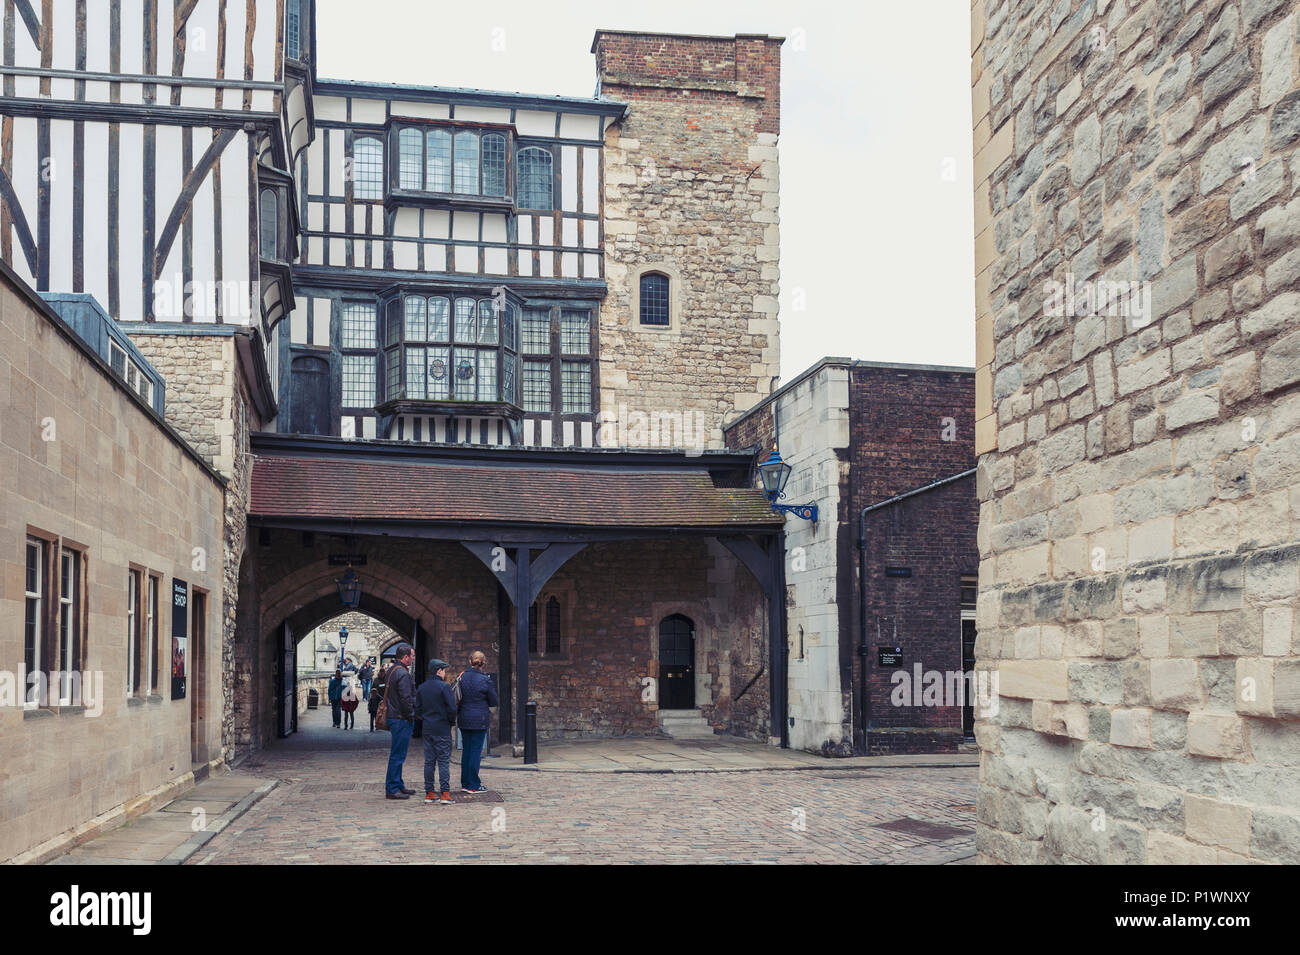 Old buildings and towers in the inner ward area of Royal Palace and Fortress of the Tower of London, a historic castle by River Thames London, England - Stock Image